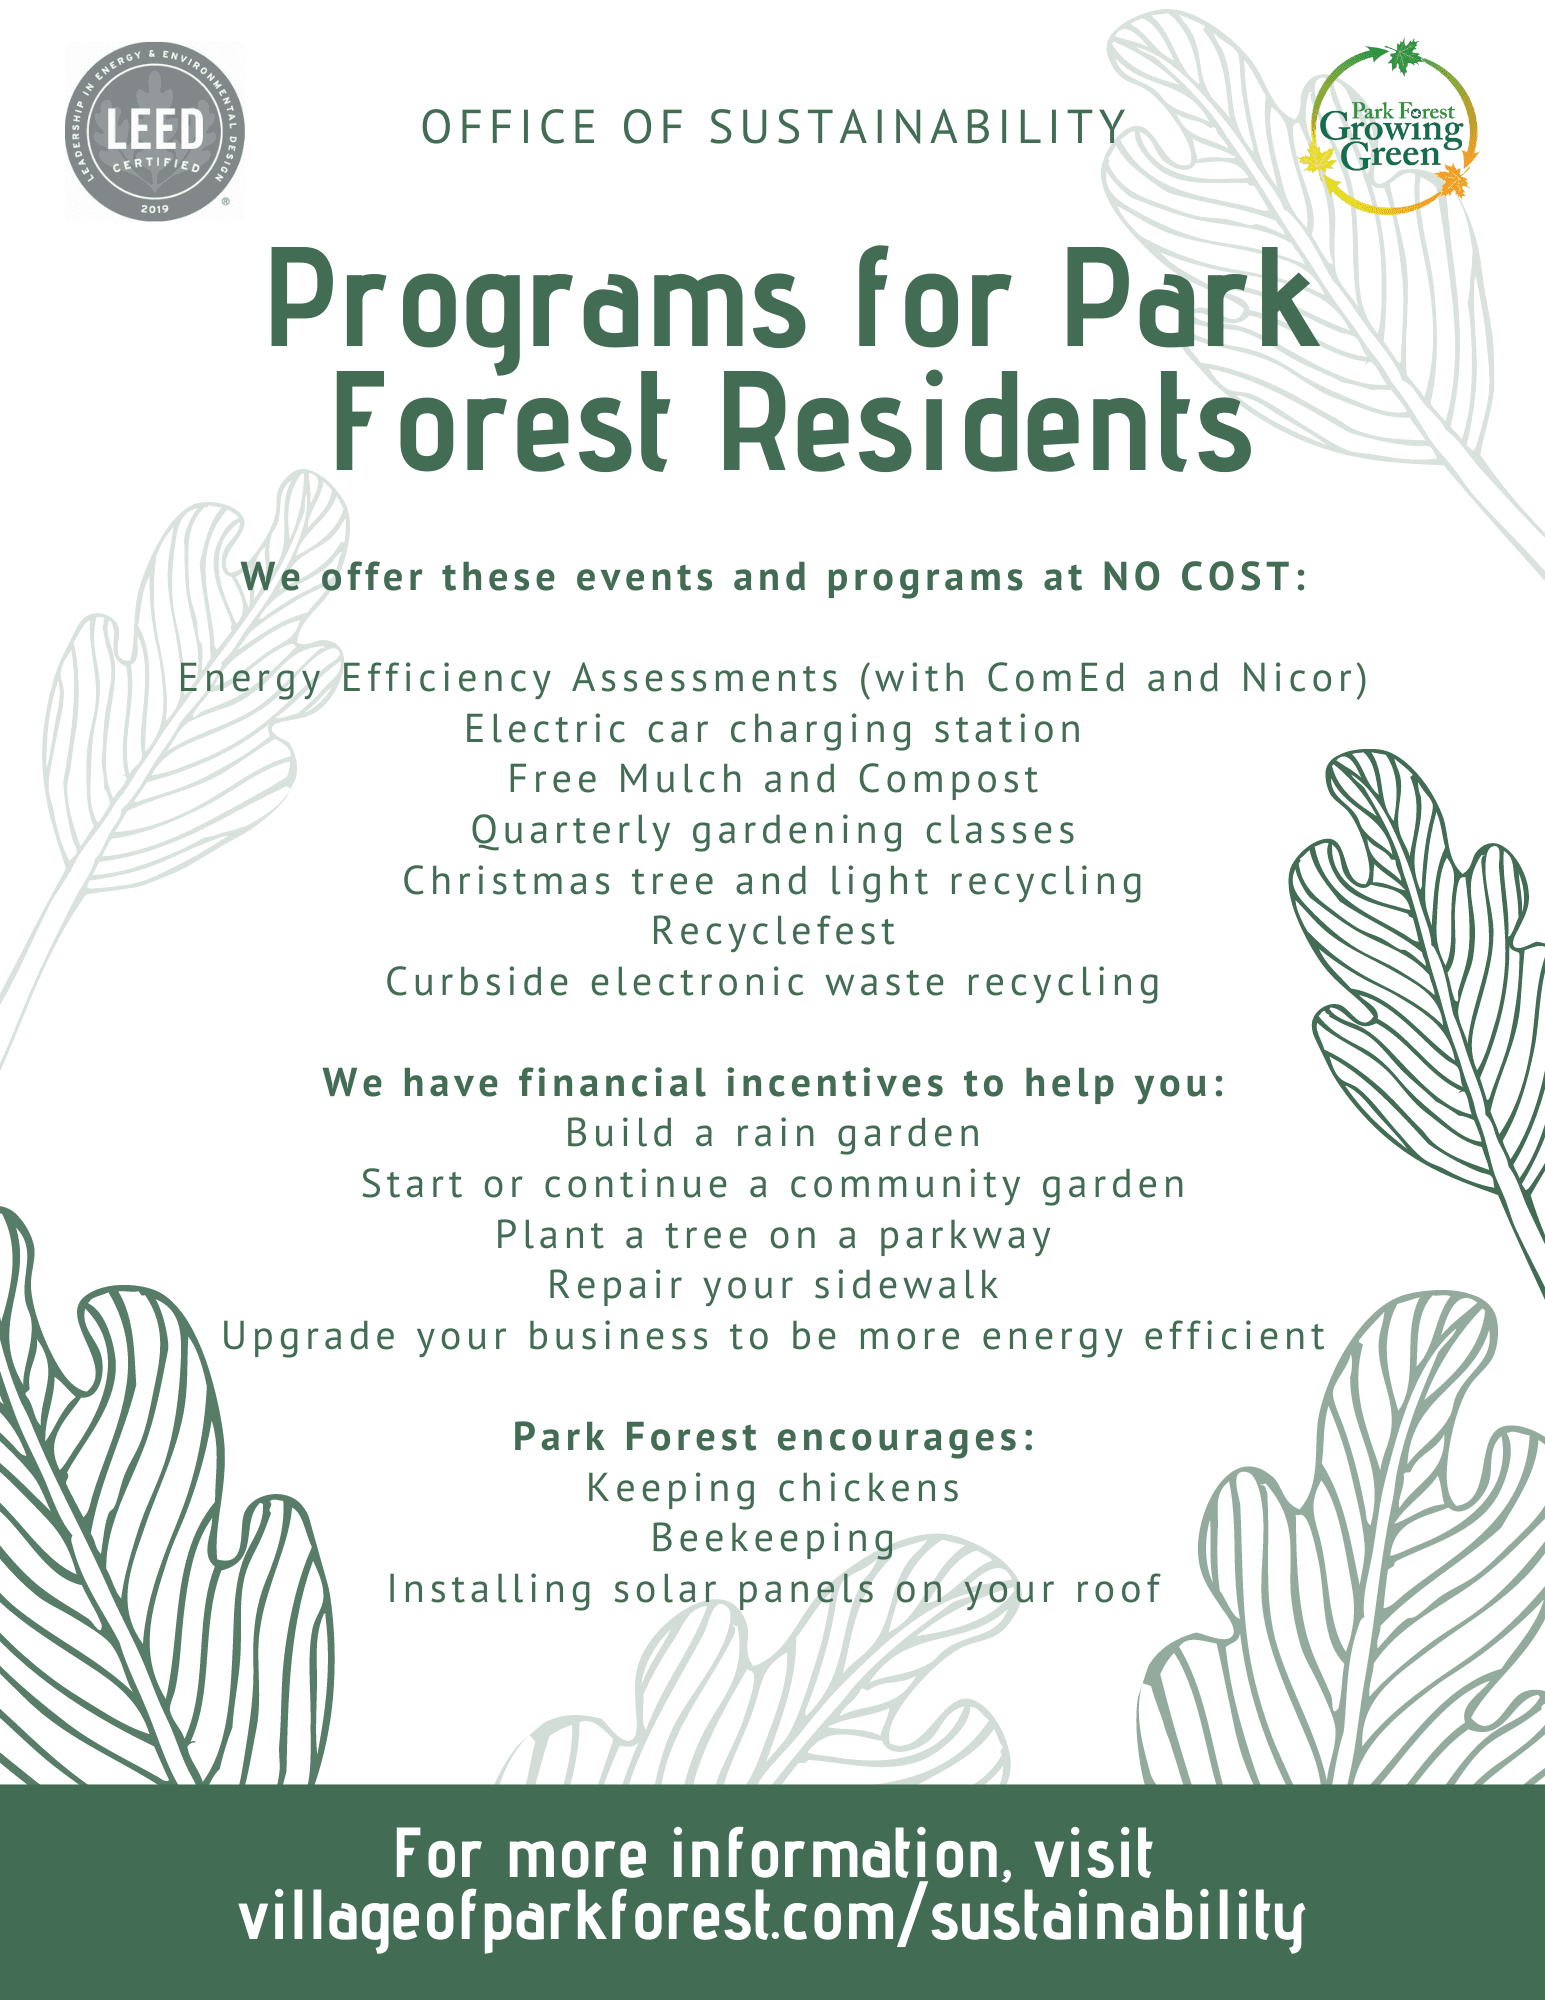 Programs for Park Forest Residents